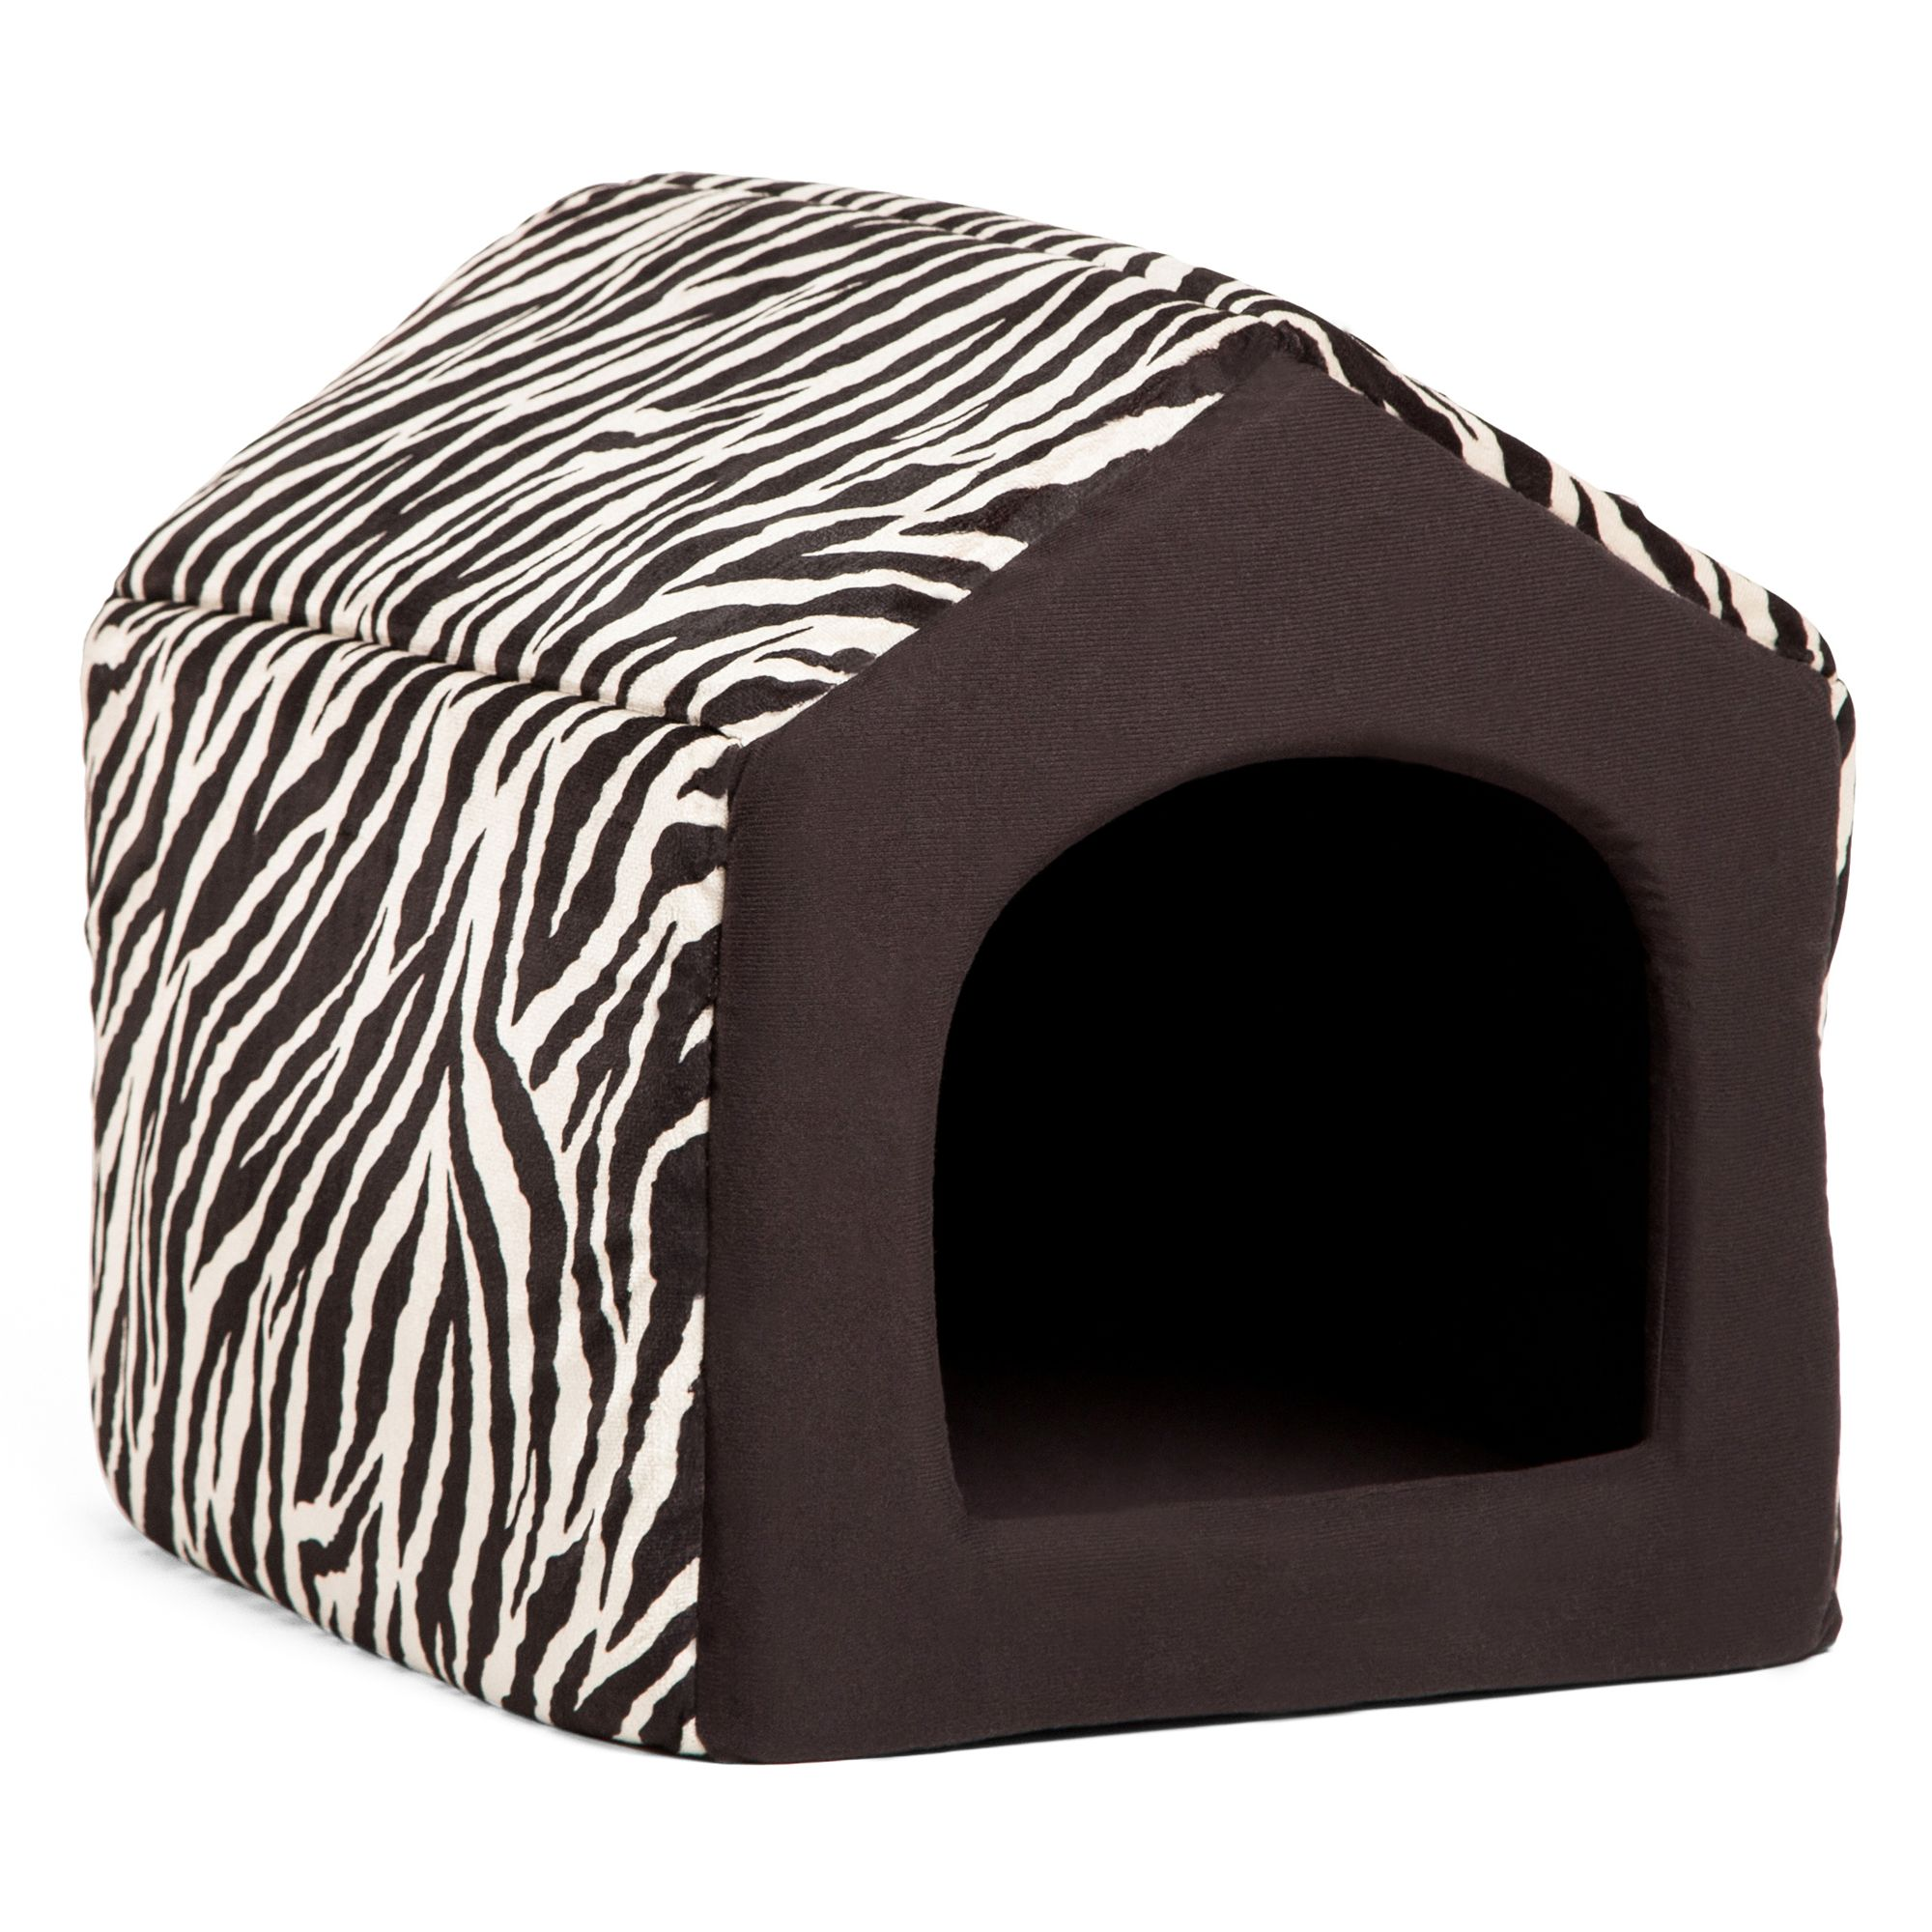 Best Friends By Sheri Convertible House Animal Print Pet Bed Size 18l X 16w X 16h Zebra